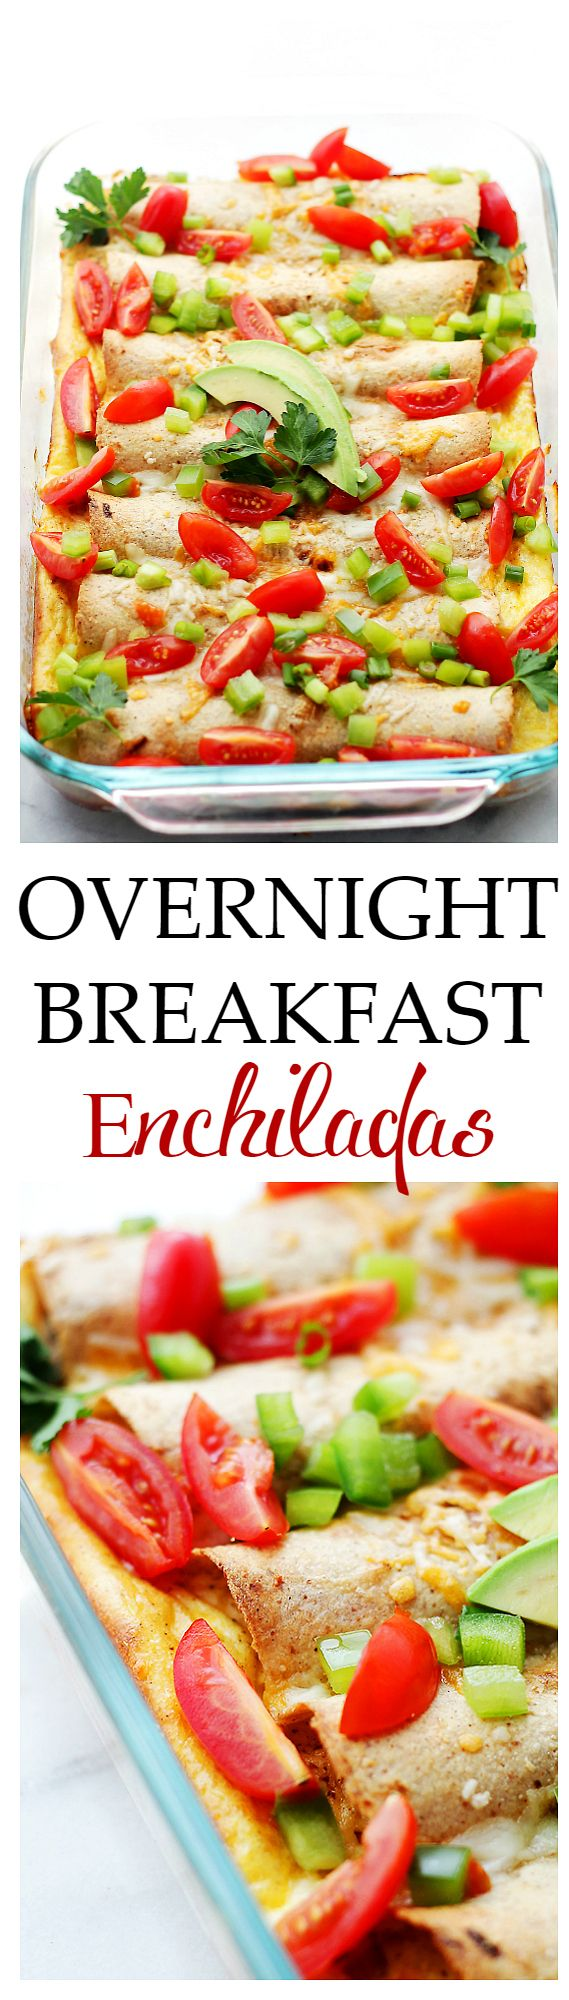 Overnight Breakfast Enchiladas - A delicious breakfast casserole that can be prepped the night before and baked the next day!  Get the recipe on diethood.com